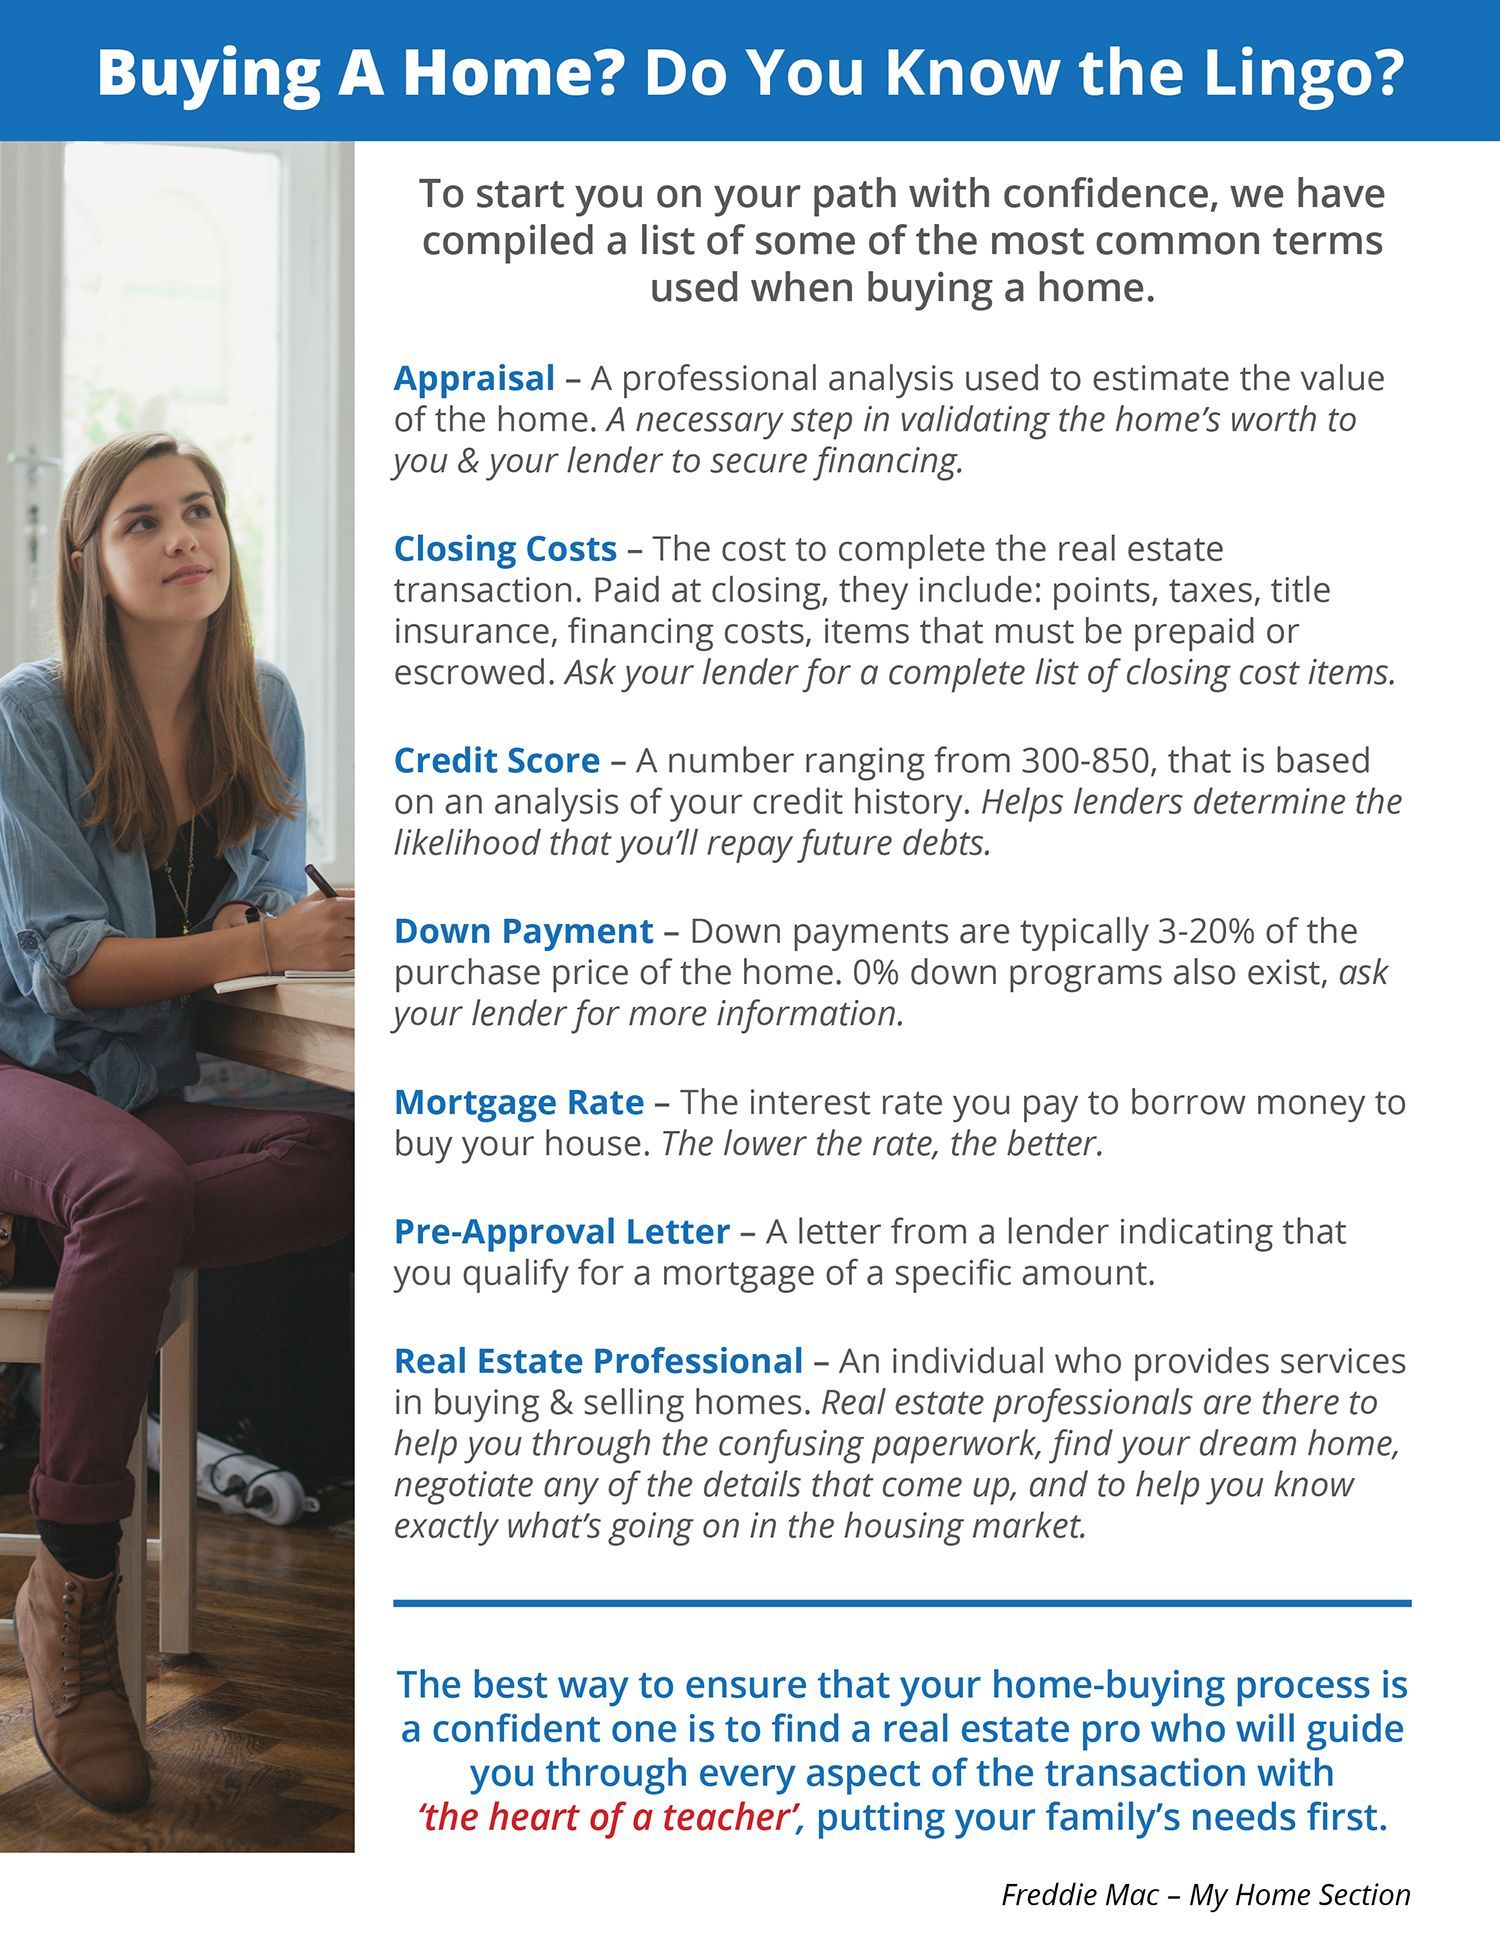 Buying A Home Do You Know The Lingo Infographic Home Buying Sell Your House Fast Real Estate